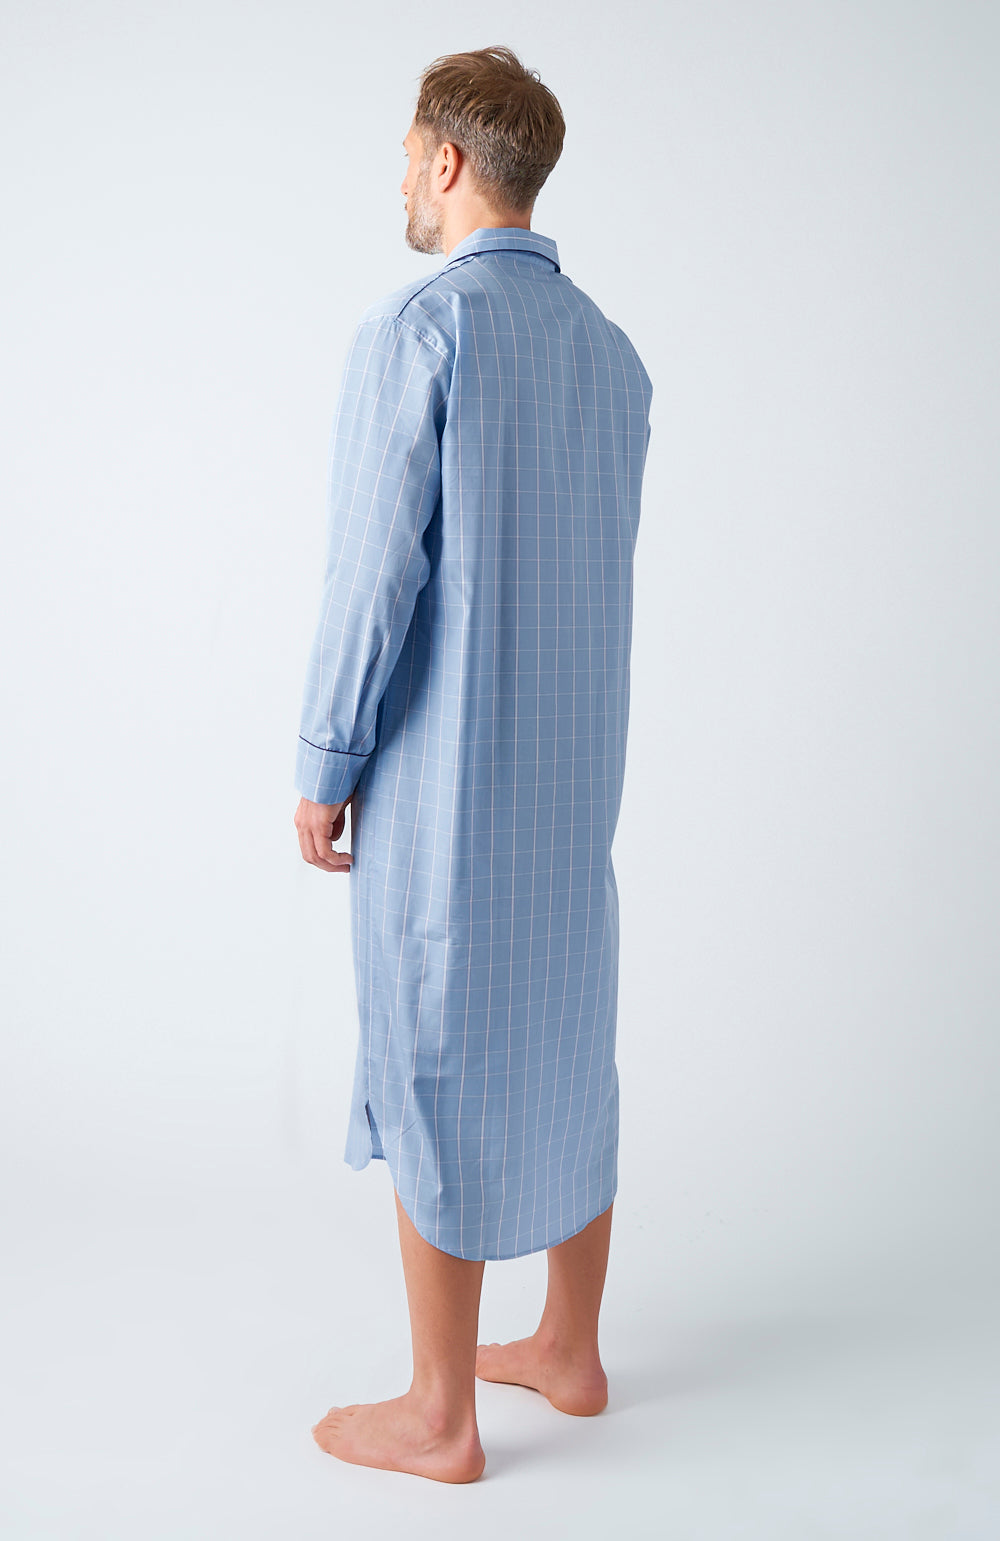 Men's Sky Purple Check Two-Fold Cotton Nightshirt | Bonsoir of London